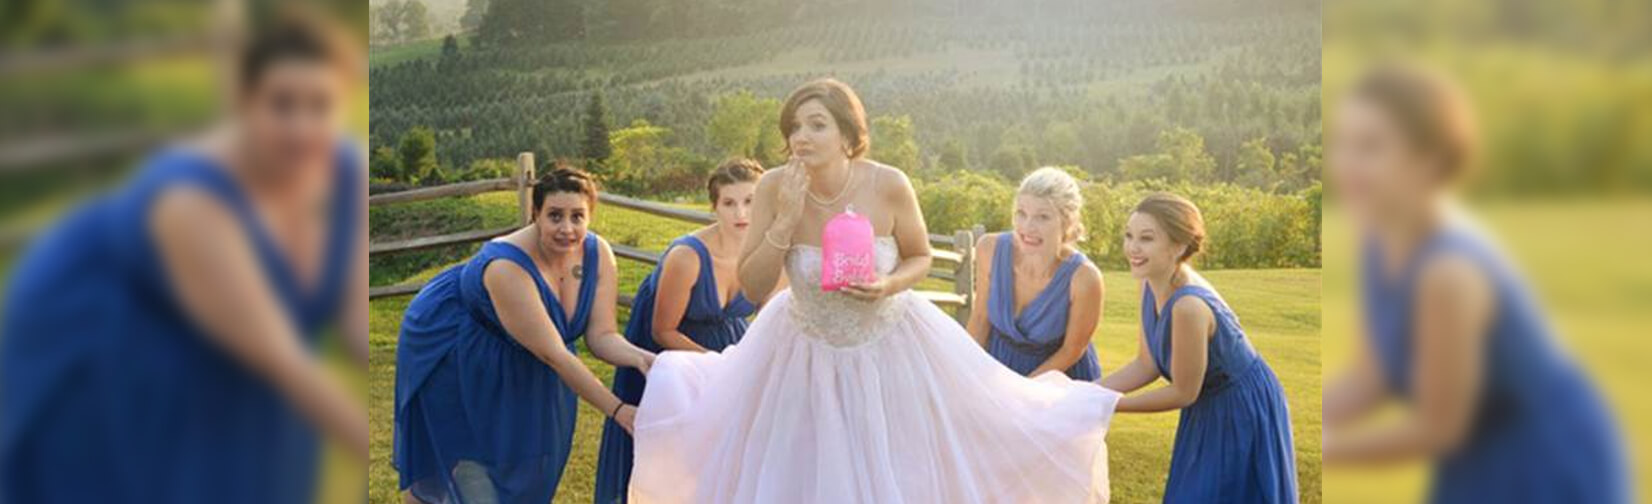 Bridal Buddy allows brides to bag up their dresses so they can use the bathroom